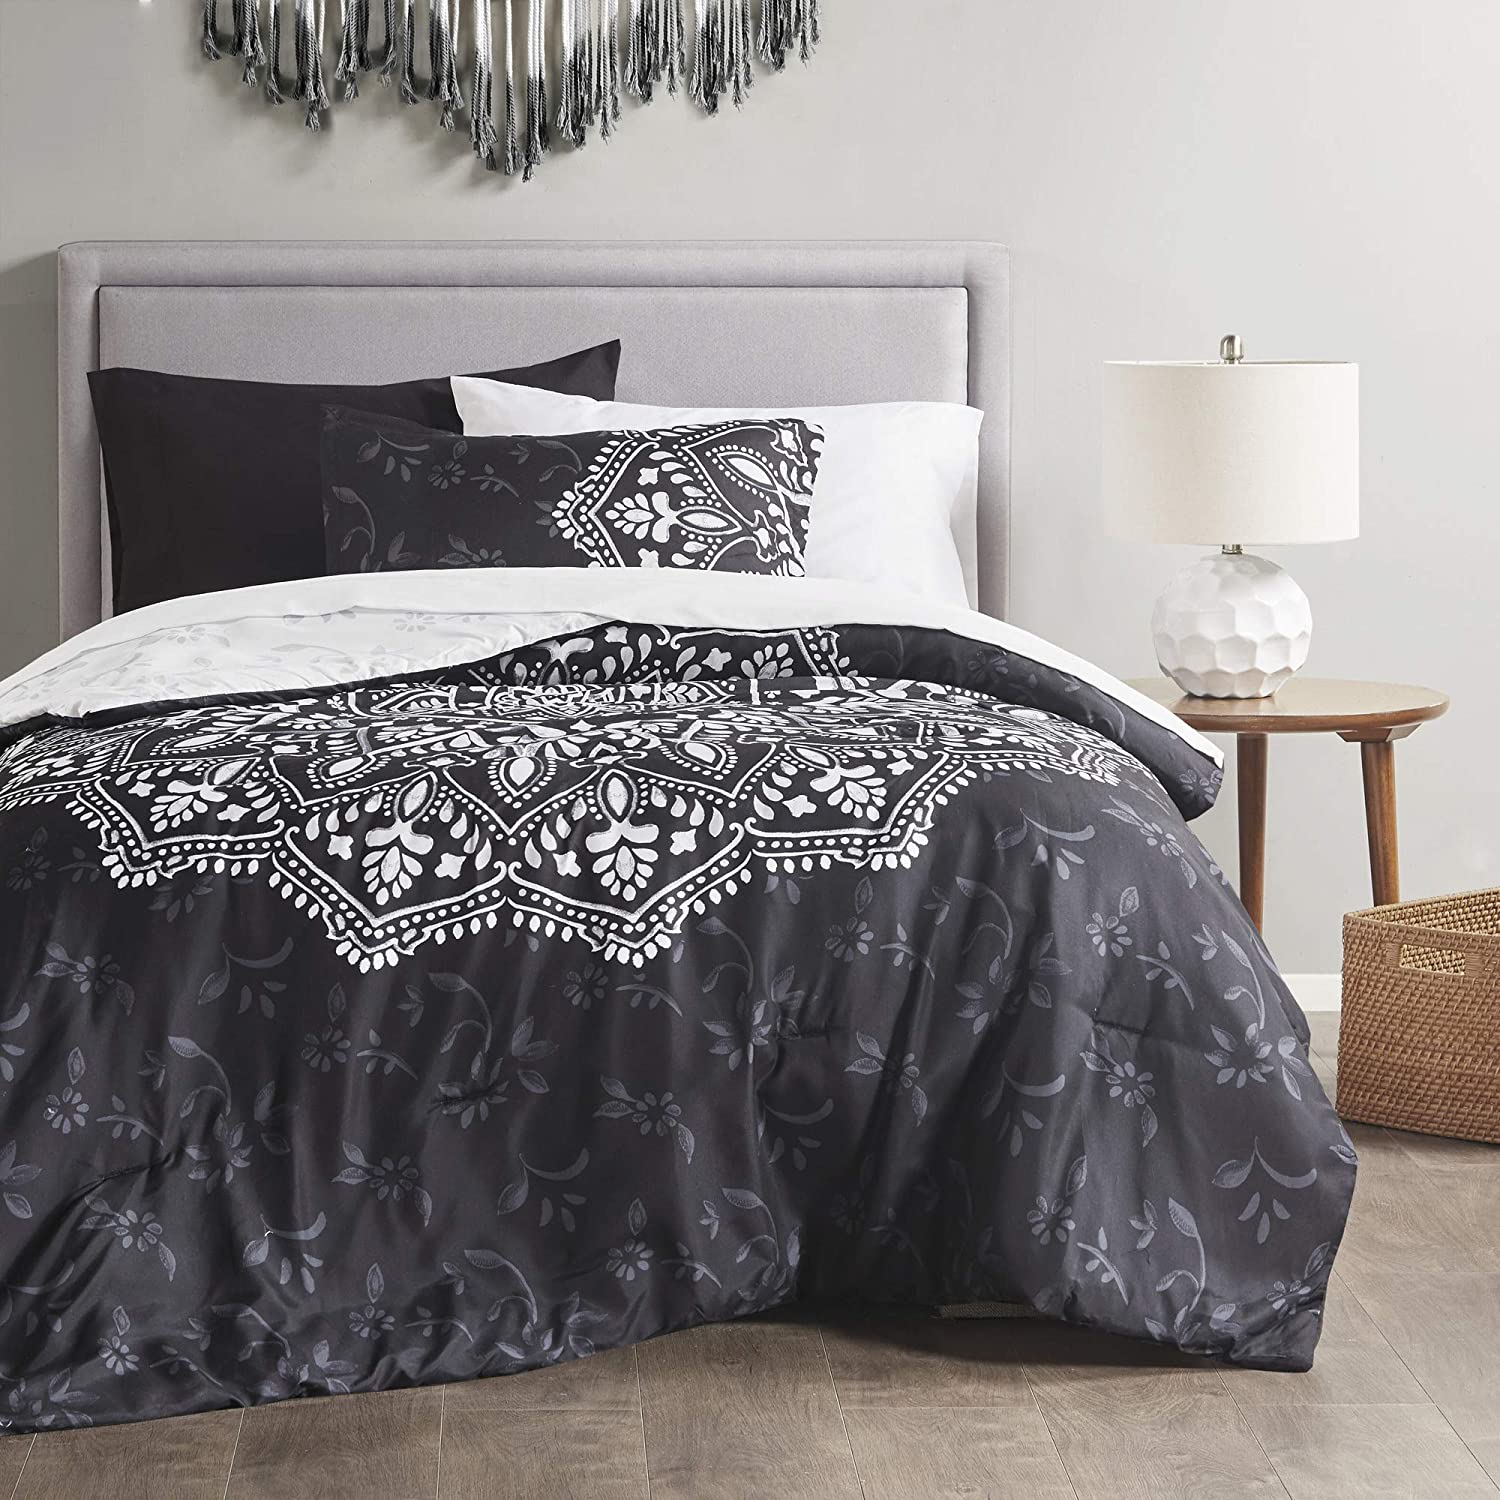 Comfort Spaces Bed in A Bag-Trendy Casual Design Cozy Comforter with Complete Sheet Set with Side Pocket All Season Cover, Matching Shams, Twin XL(66